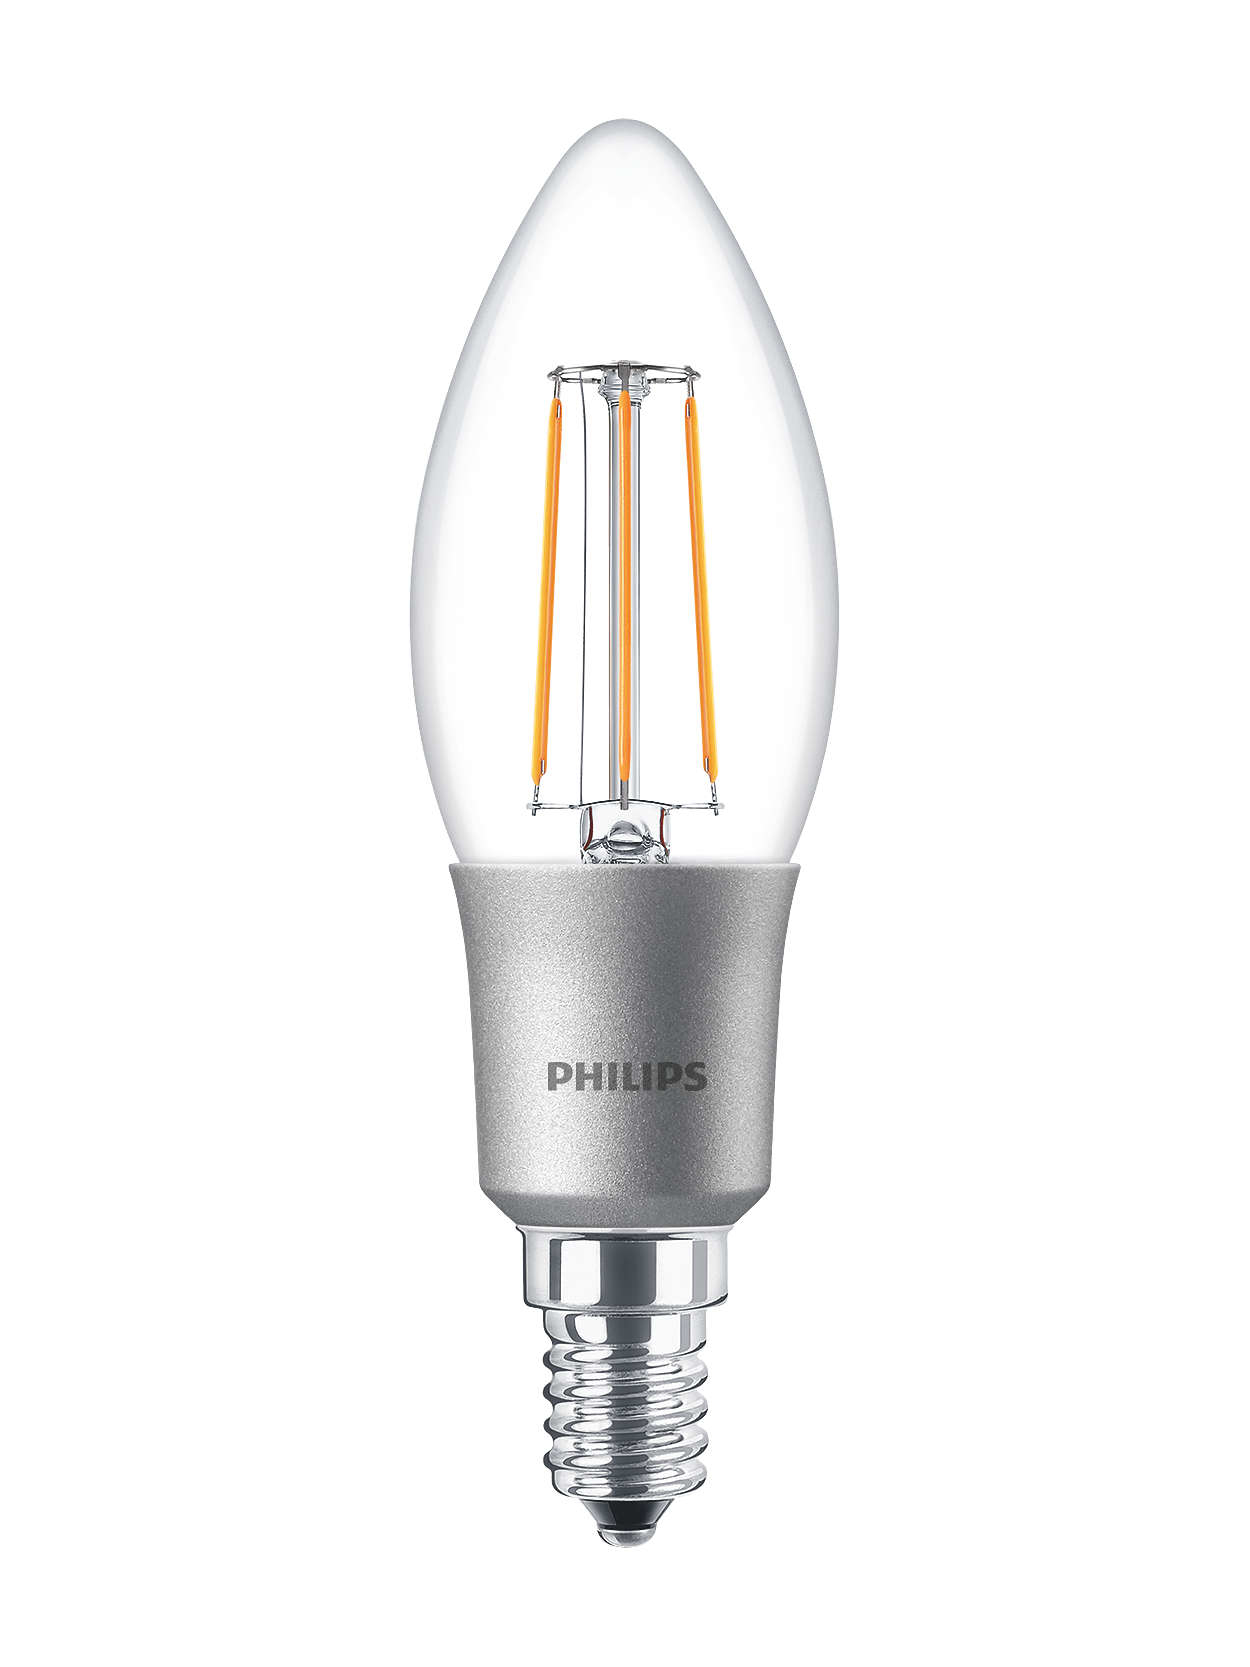 Philips - Lampadina a LED - Philedcan25e14d